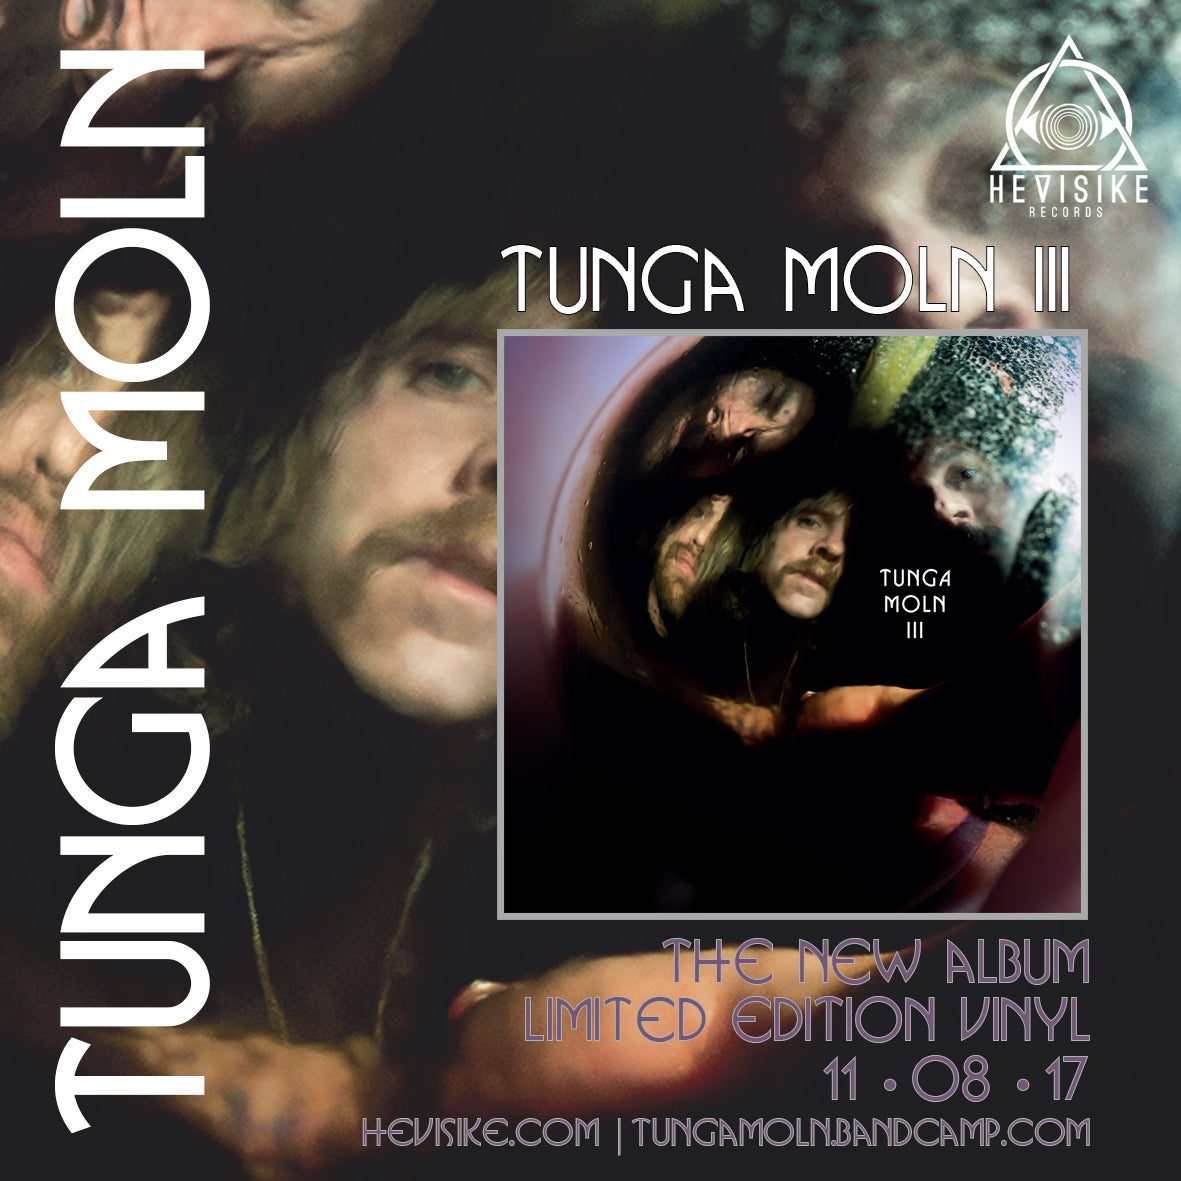 Image of Tunga Moln - III LP